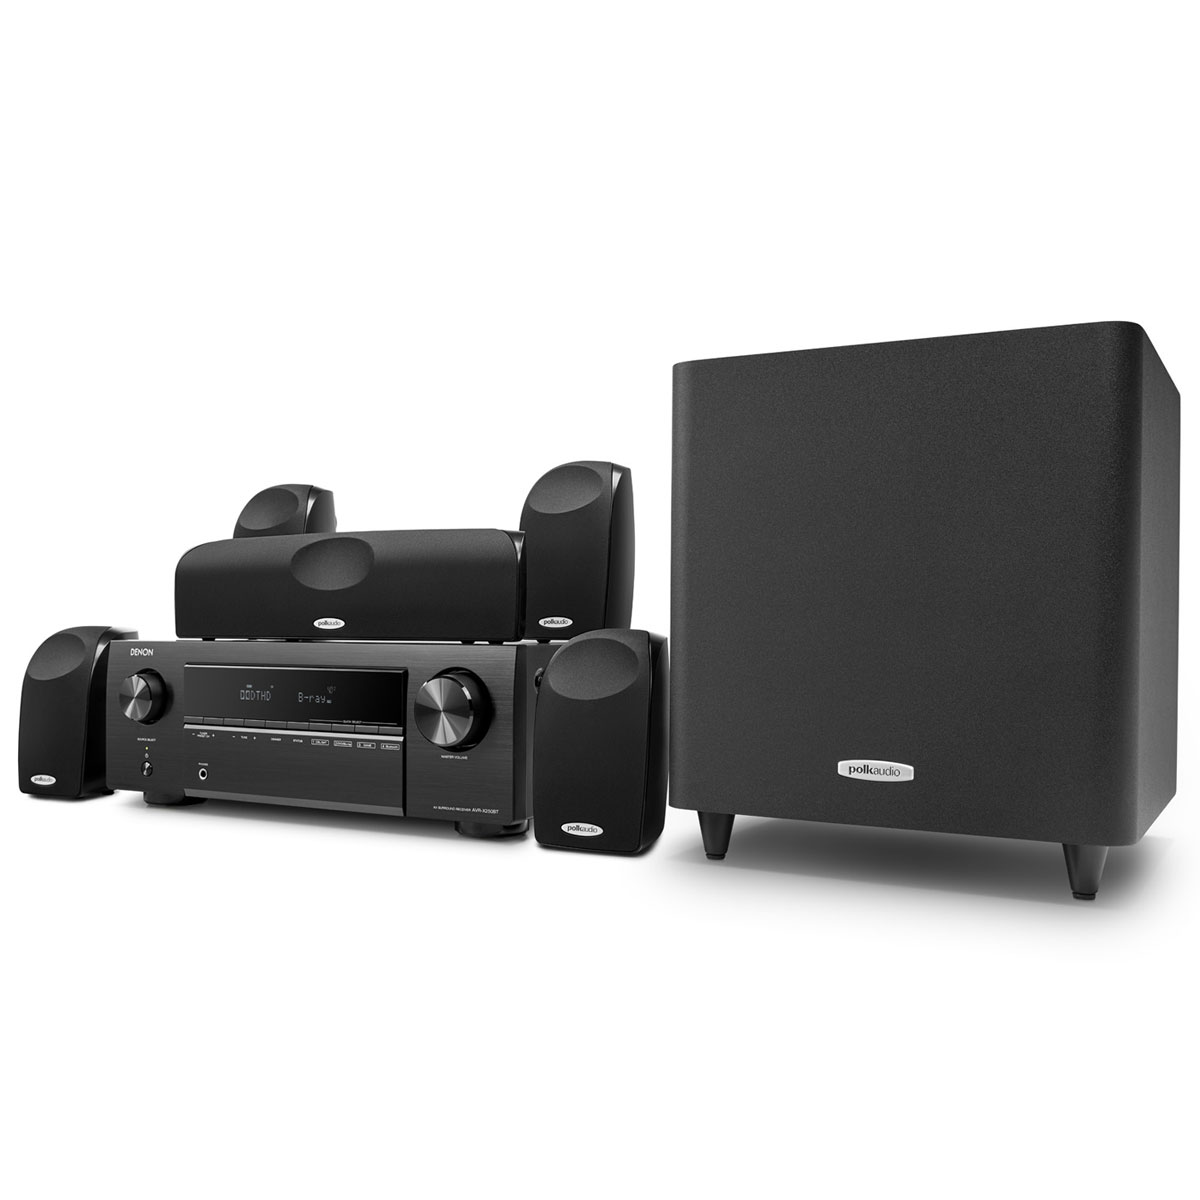 Ensemble home cinéma Denon DHT-X250TL Ampli-tuner 5.1 Home Cinema 3D Ready 130 Watts - DTS-HD Master Audio / Dolby TrueHD - 5 entrées HDMI 2.0 4K Ultra HD HDCP 2.2 - HDR / HLG - Bluetooth + Pack d'enceintes 5.1